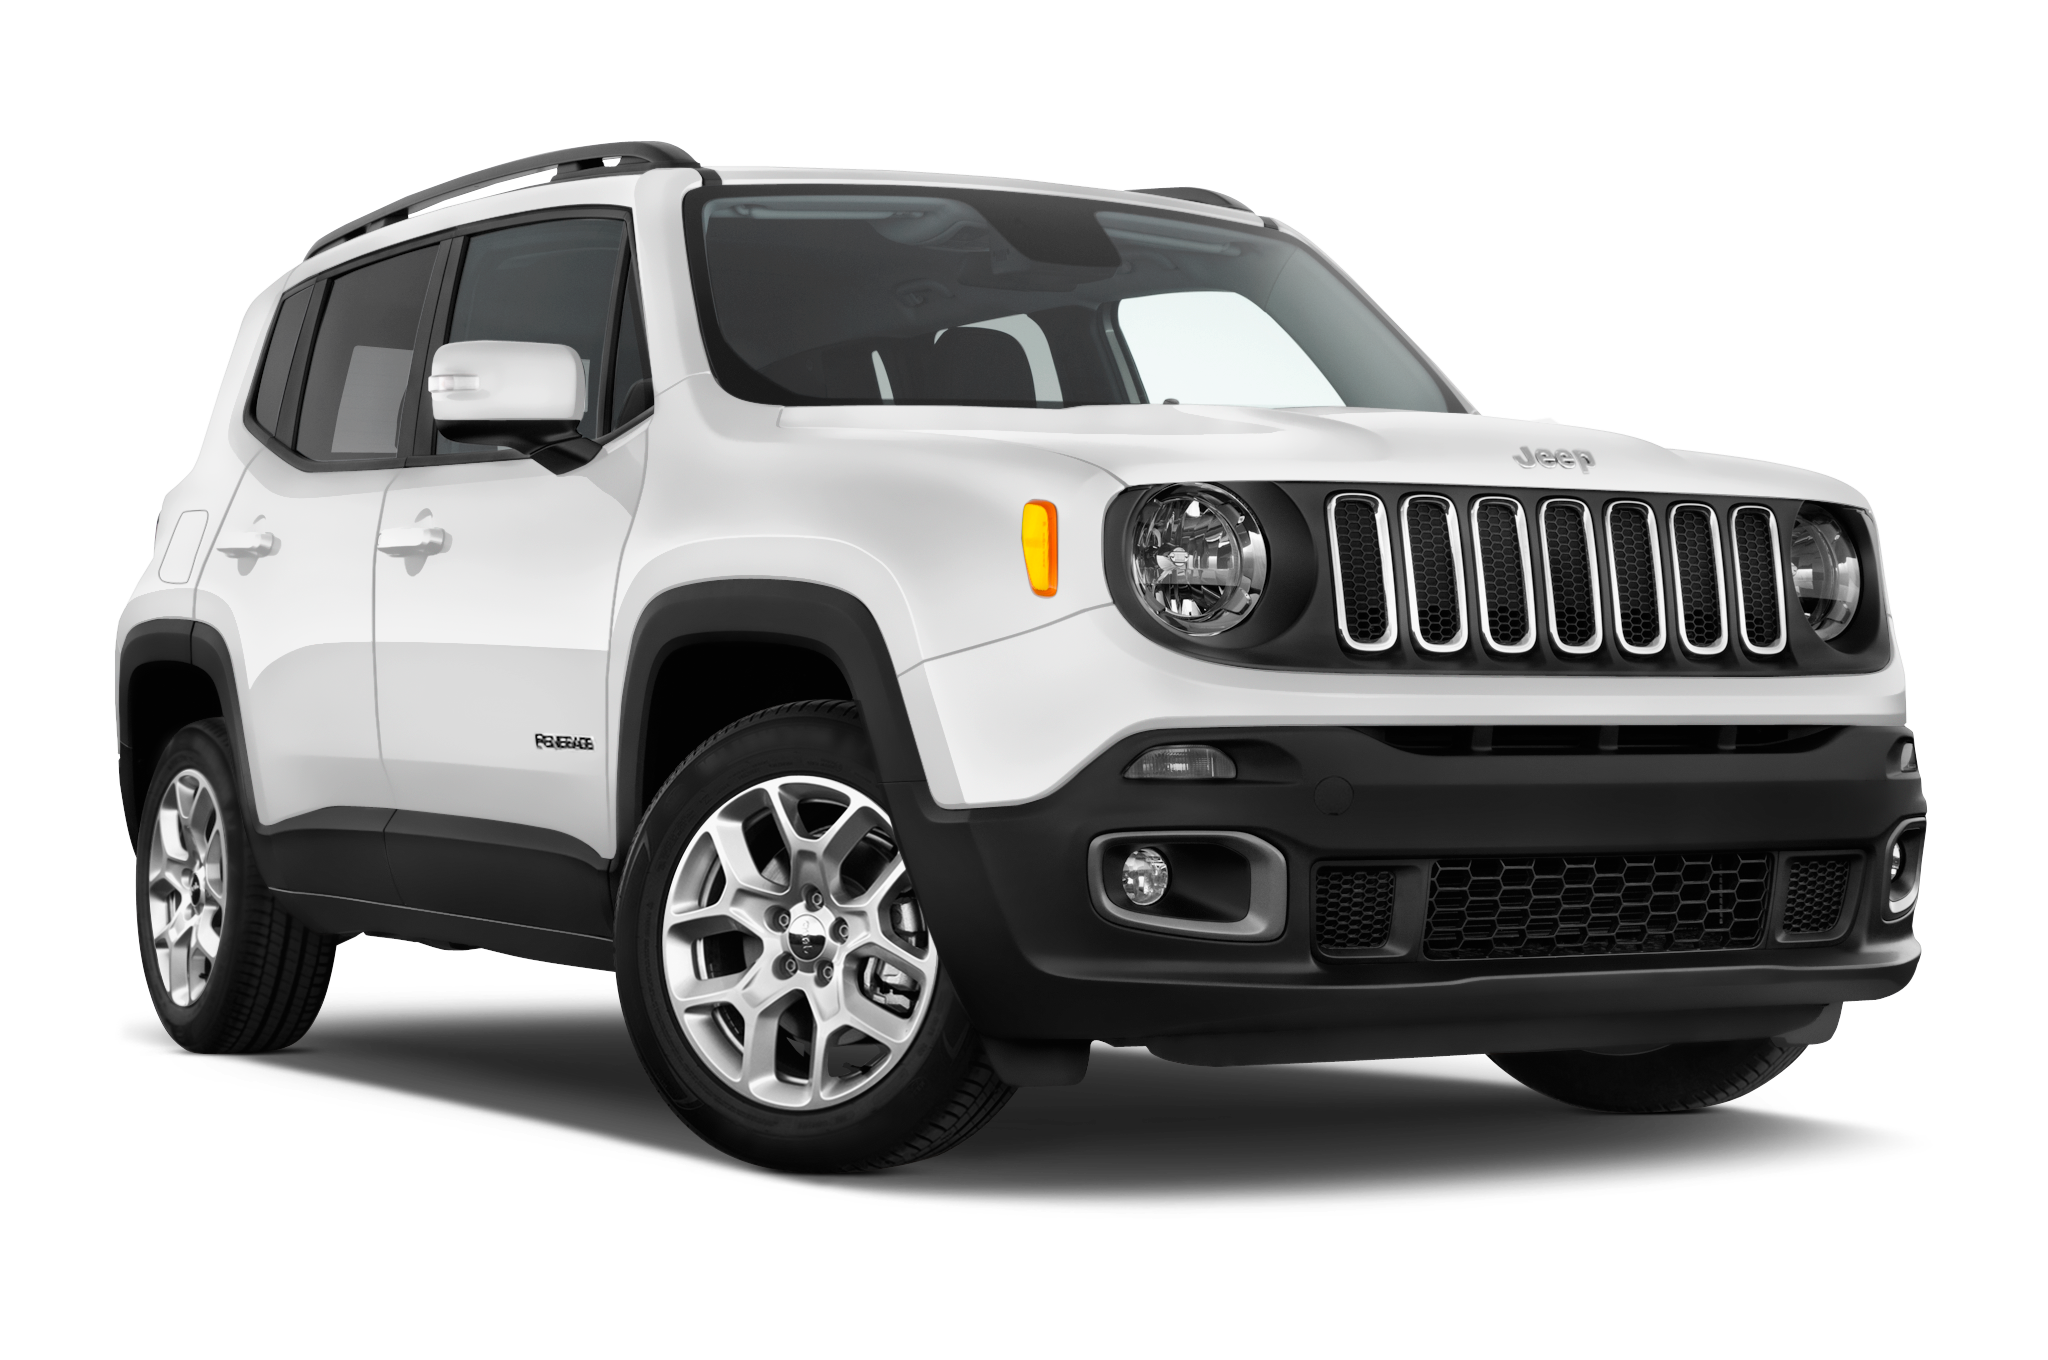 Jeep Renegade Lease Deals From 219pm Carwow